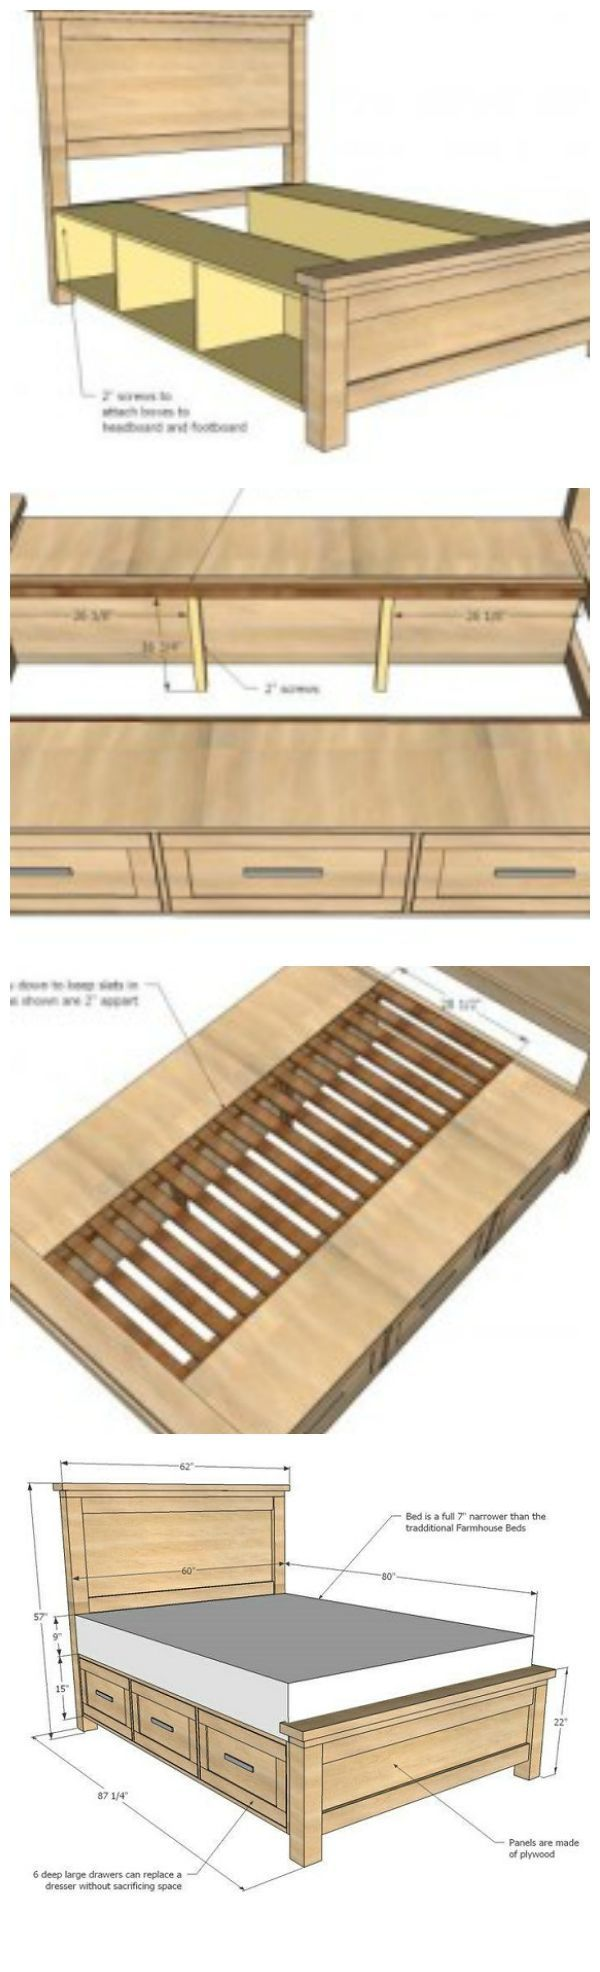 Diy bed frame with drawer plans - Best 25 Bed Drawers Ideas On Pinterest Pallet Platform Bed Wooden Bed With Storage And Wooden Pallet Beds